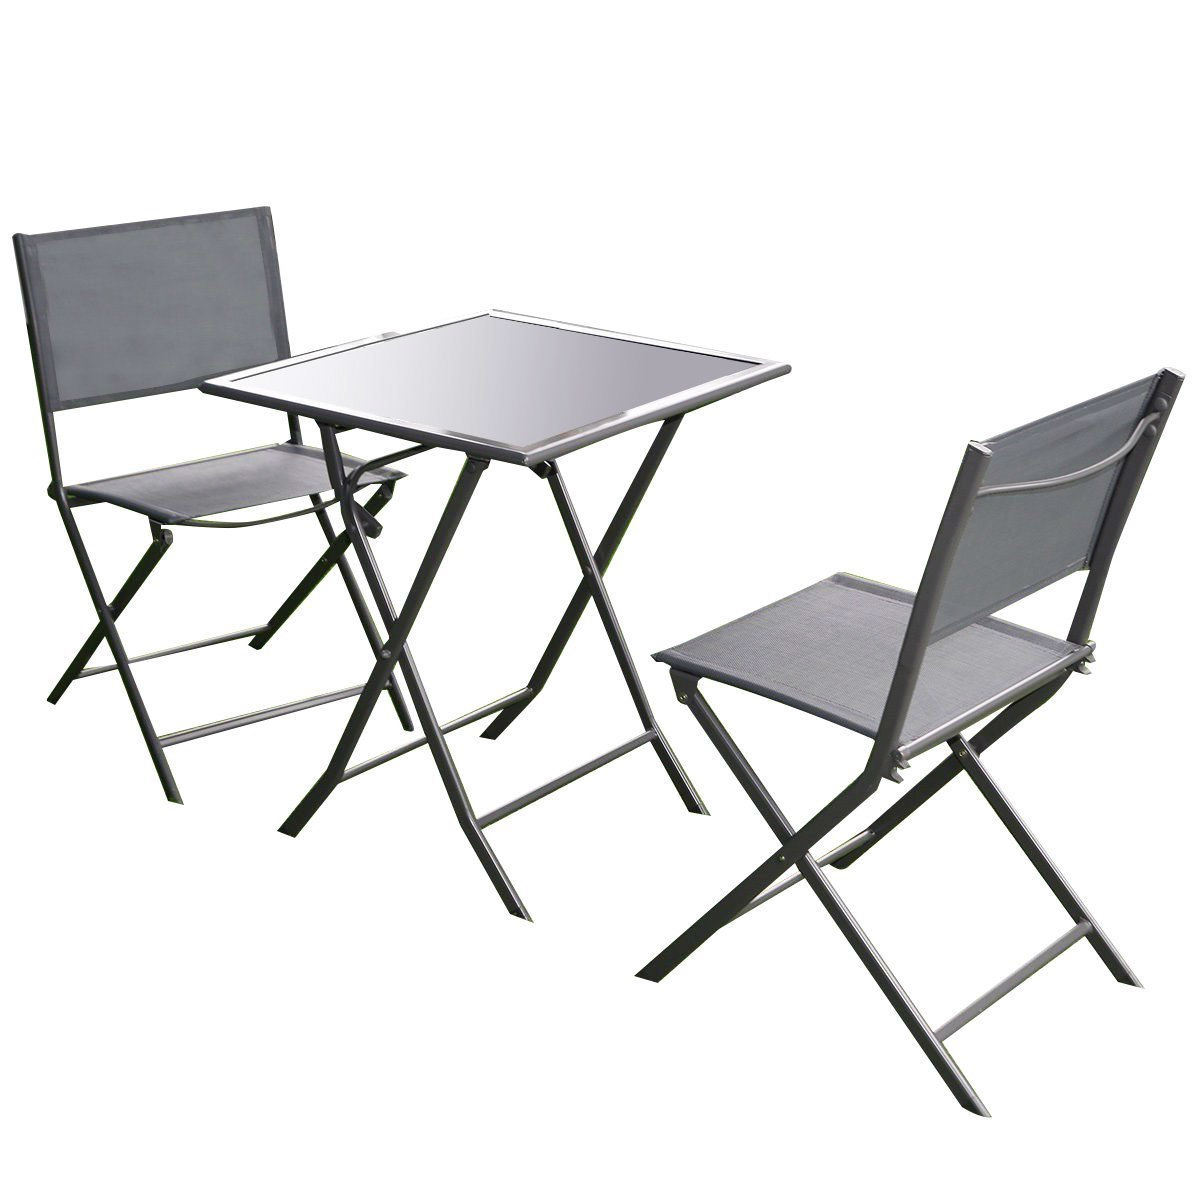 - Outdoor 3-Piece Patio Furniture Folding Table Chair Set